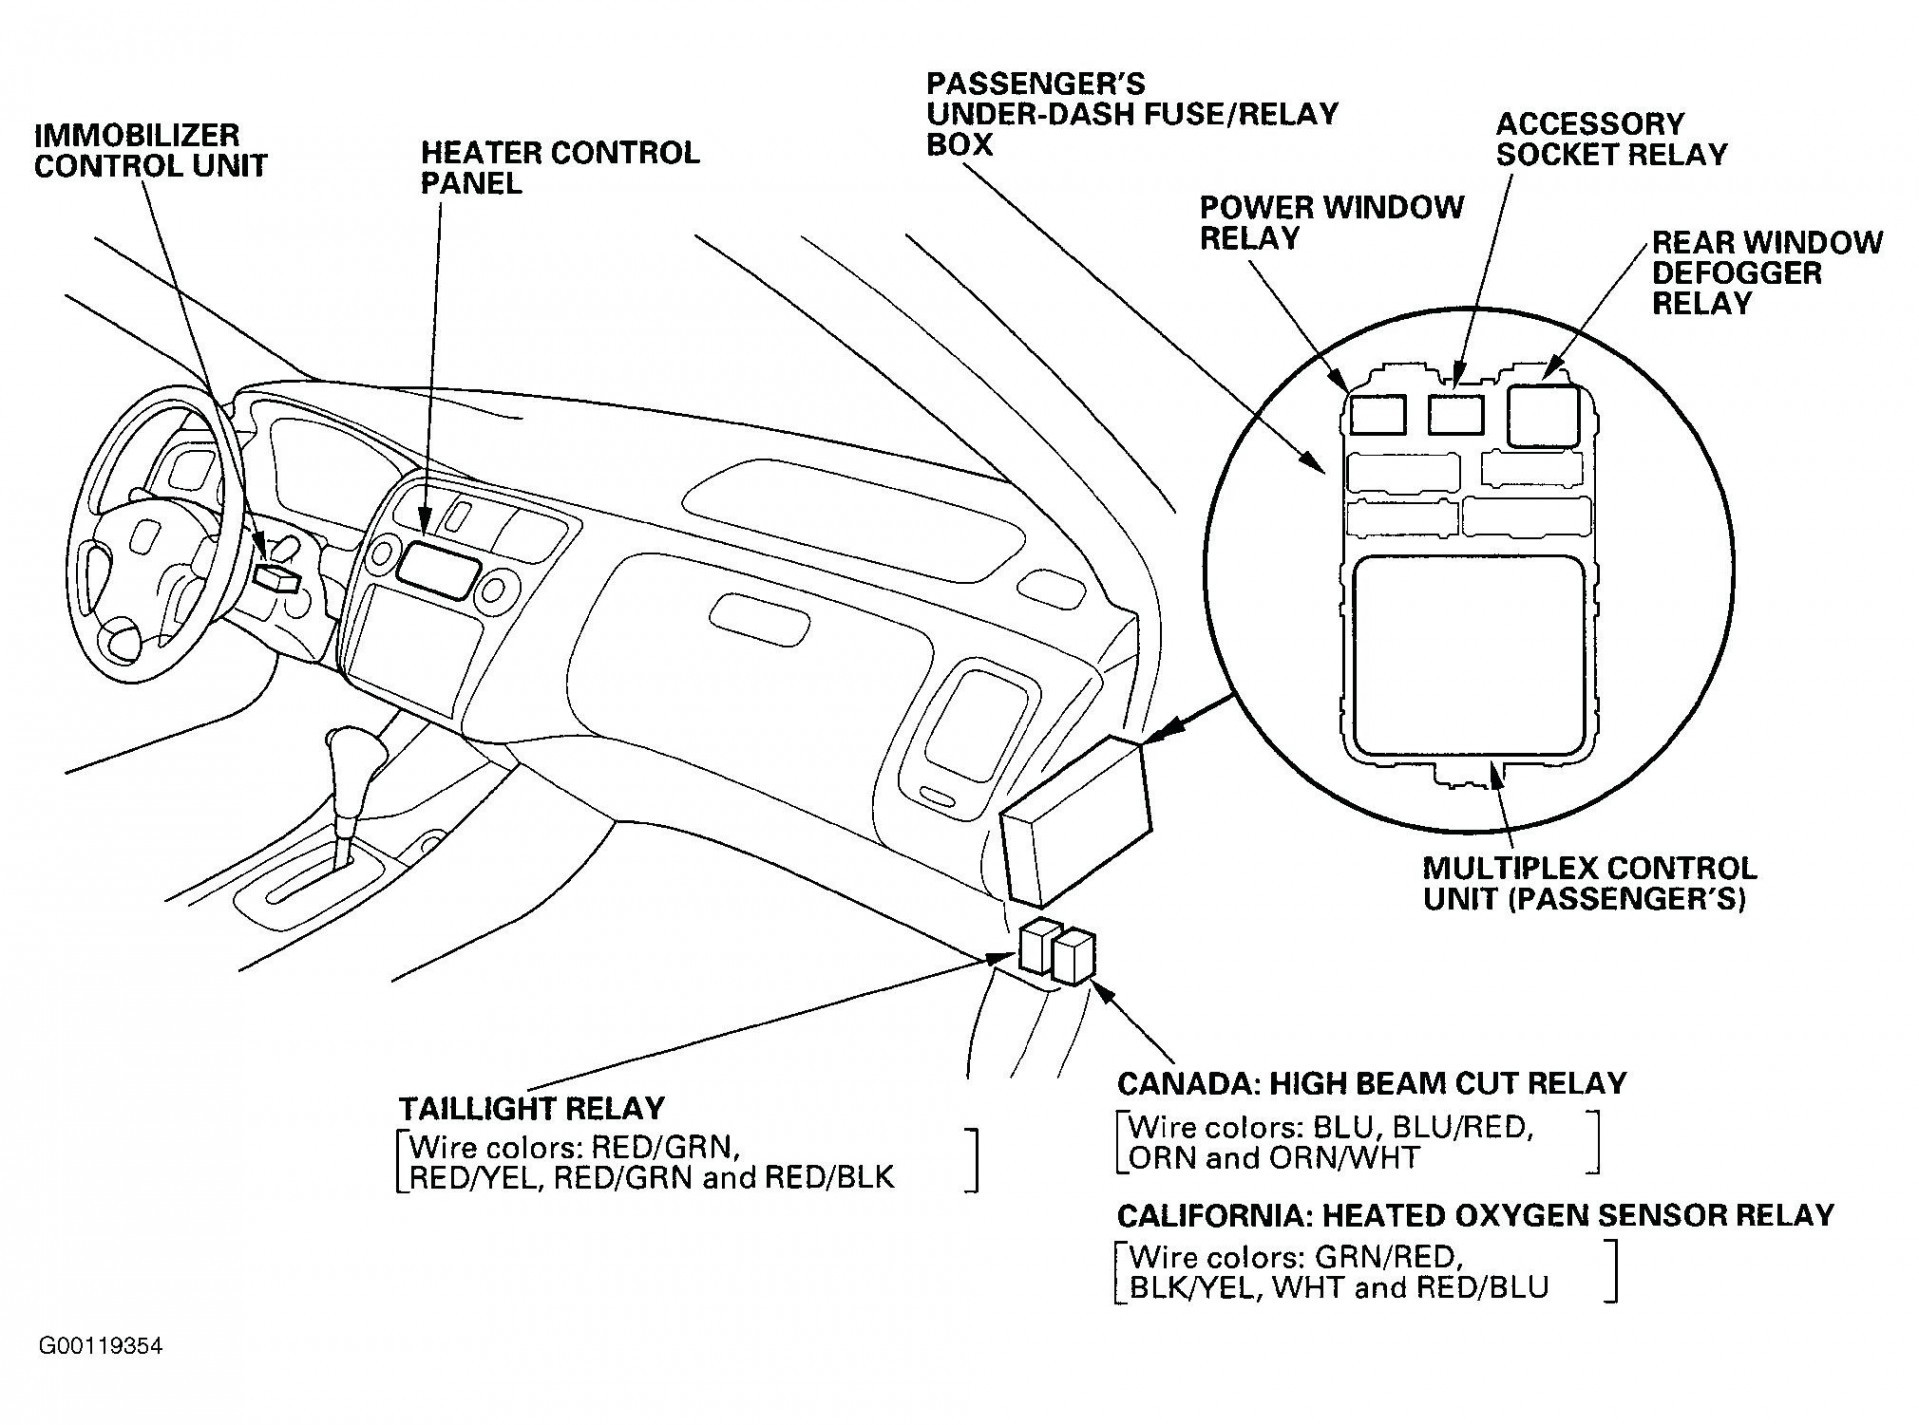 Wiring Diagram For Del Sol Page 4 And Schematics 94 Honda Engine 2008 Civic Oil Diagrams Instructions Of